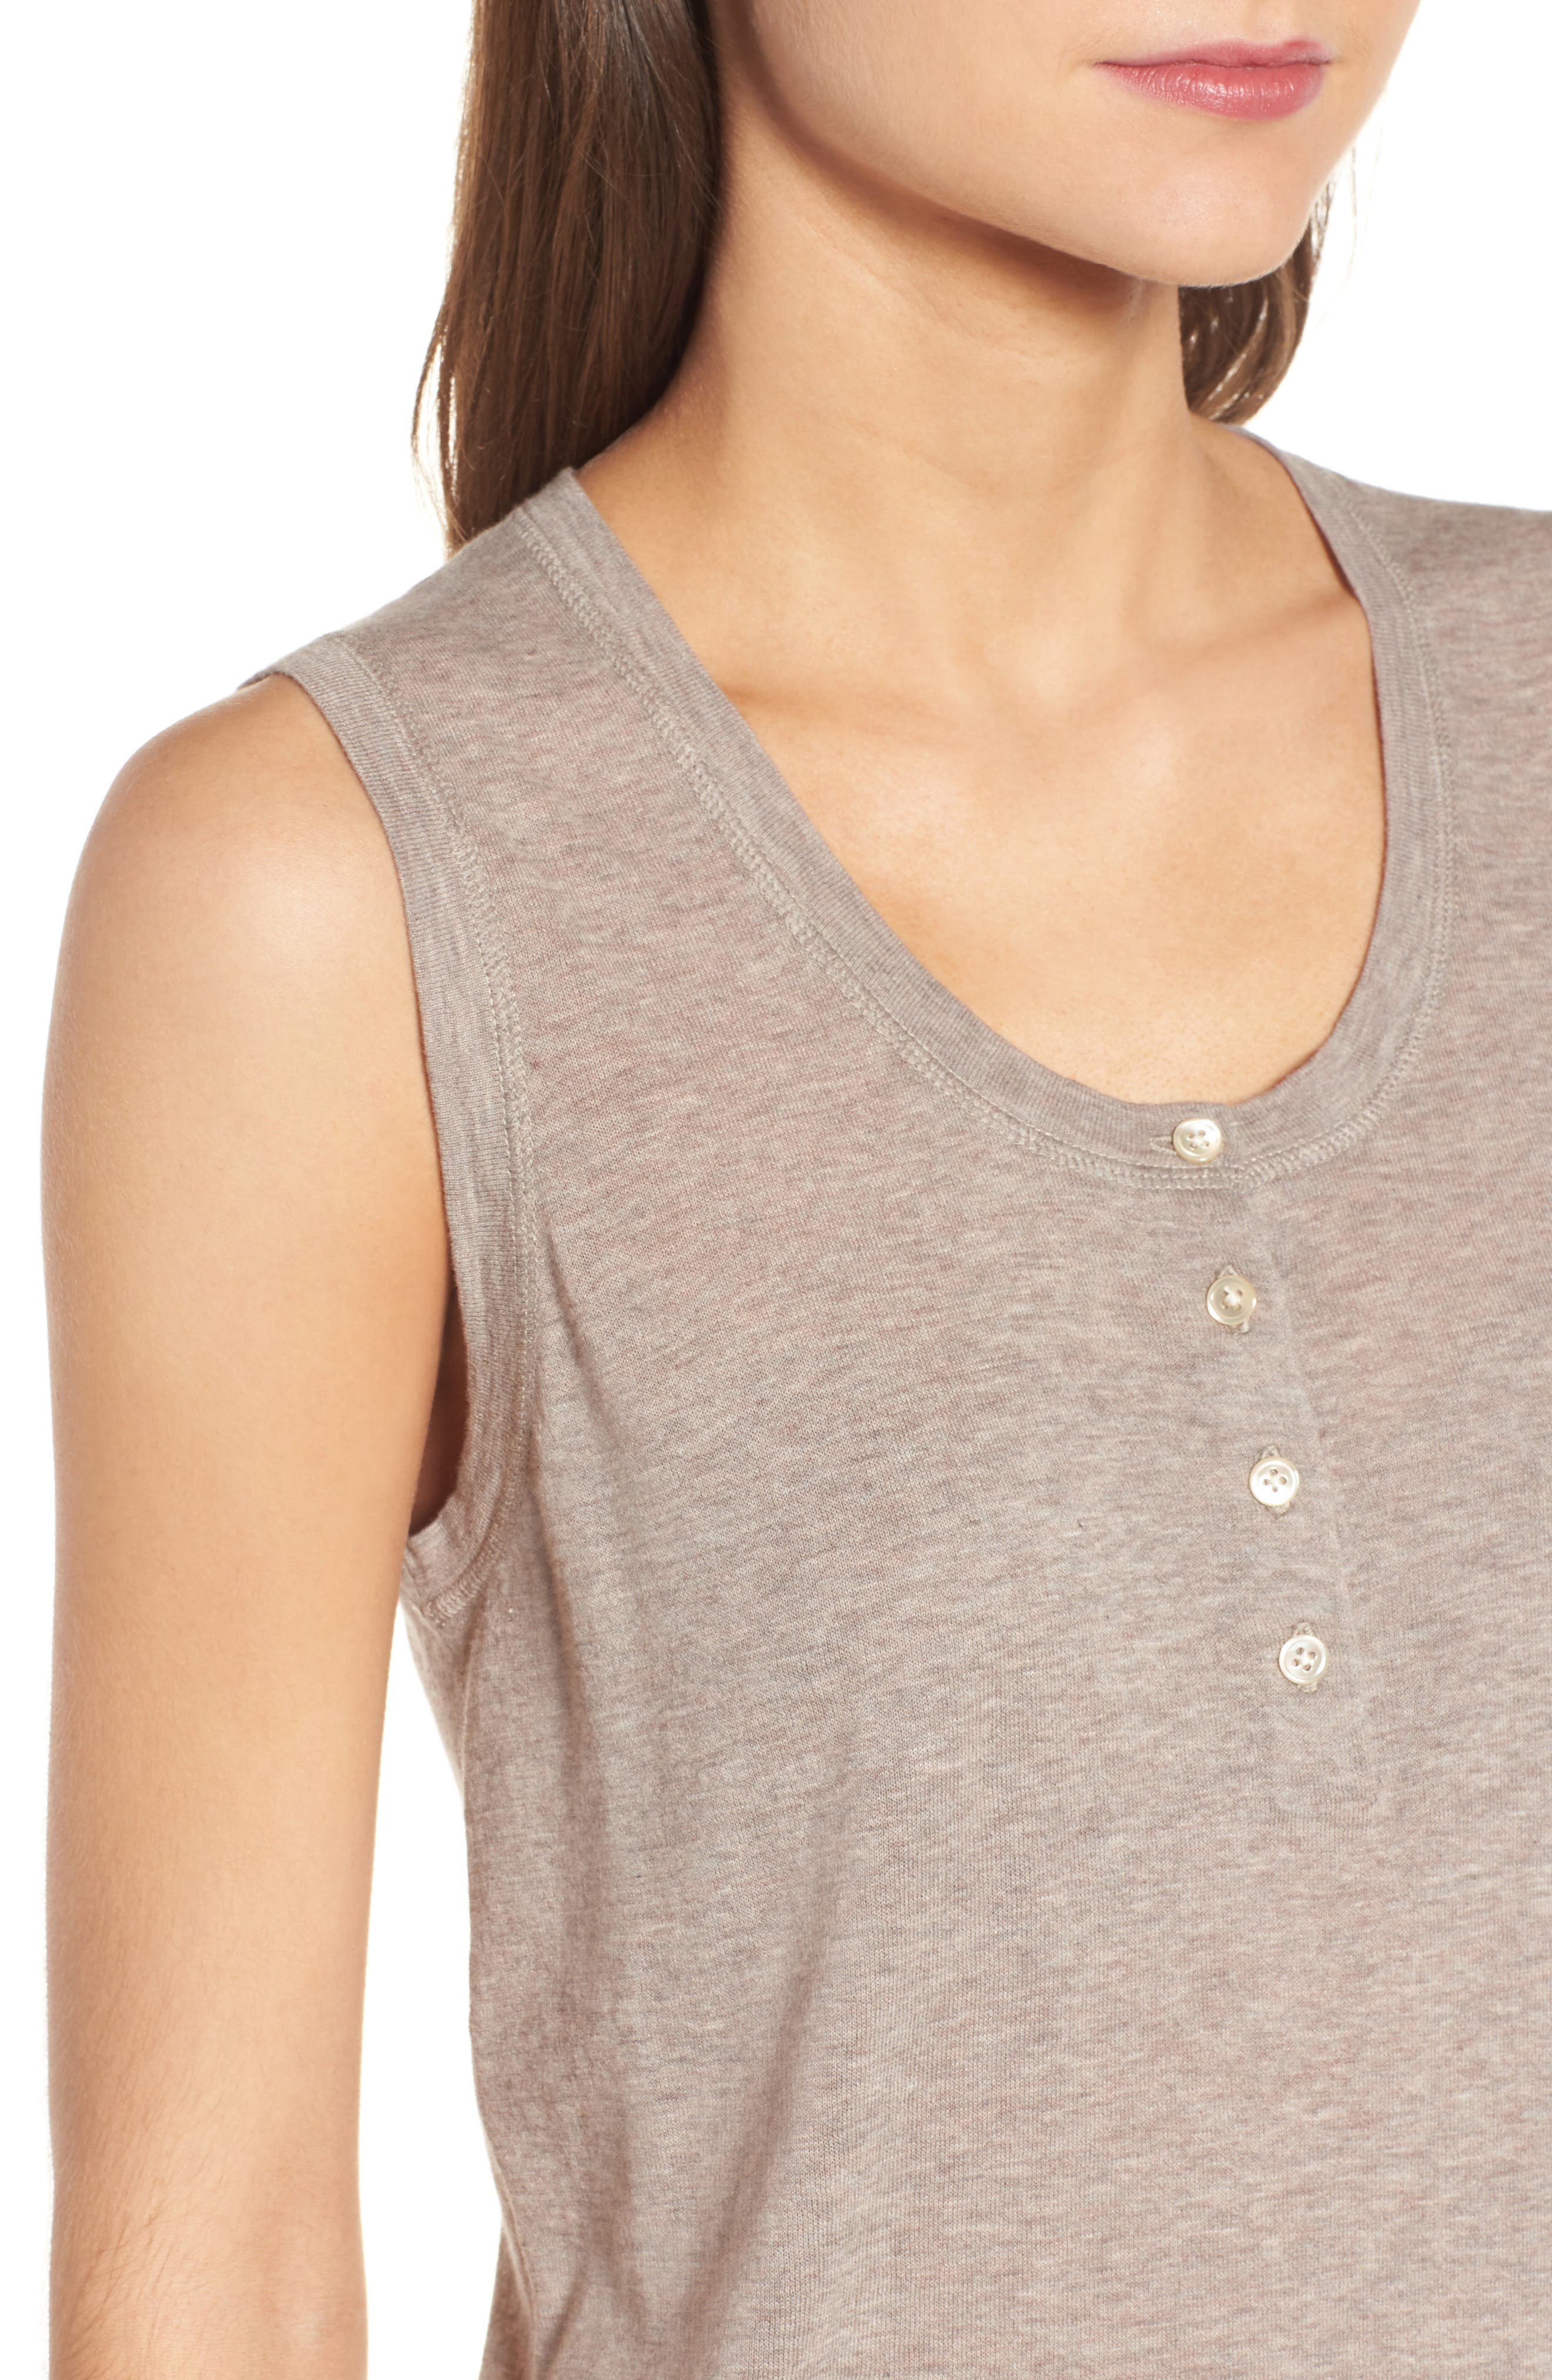 Henley Tank Sweater,                             Alternate thumbnail 4, color,                             249